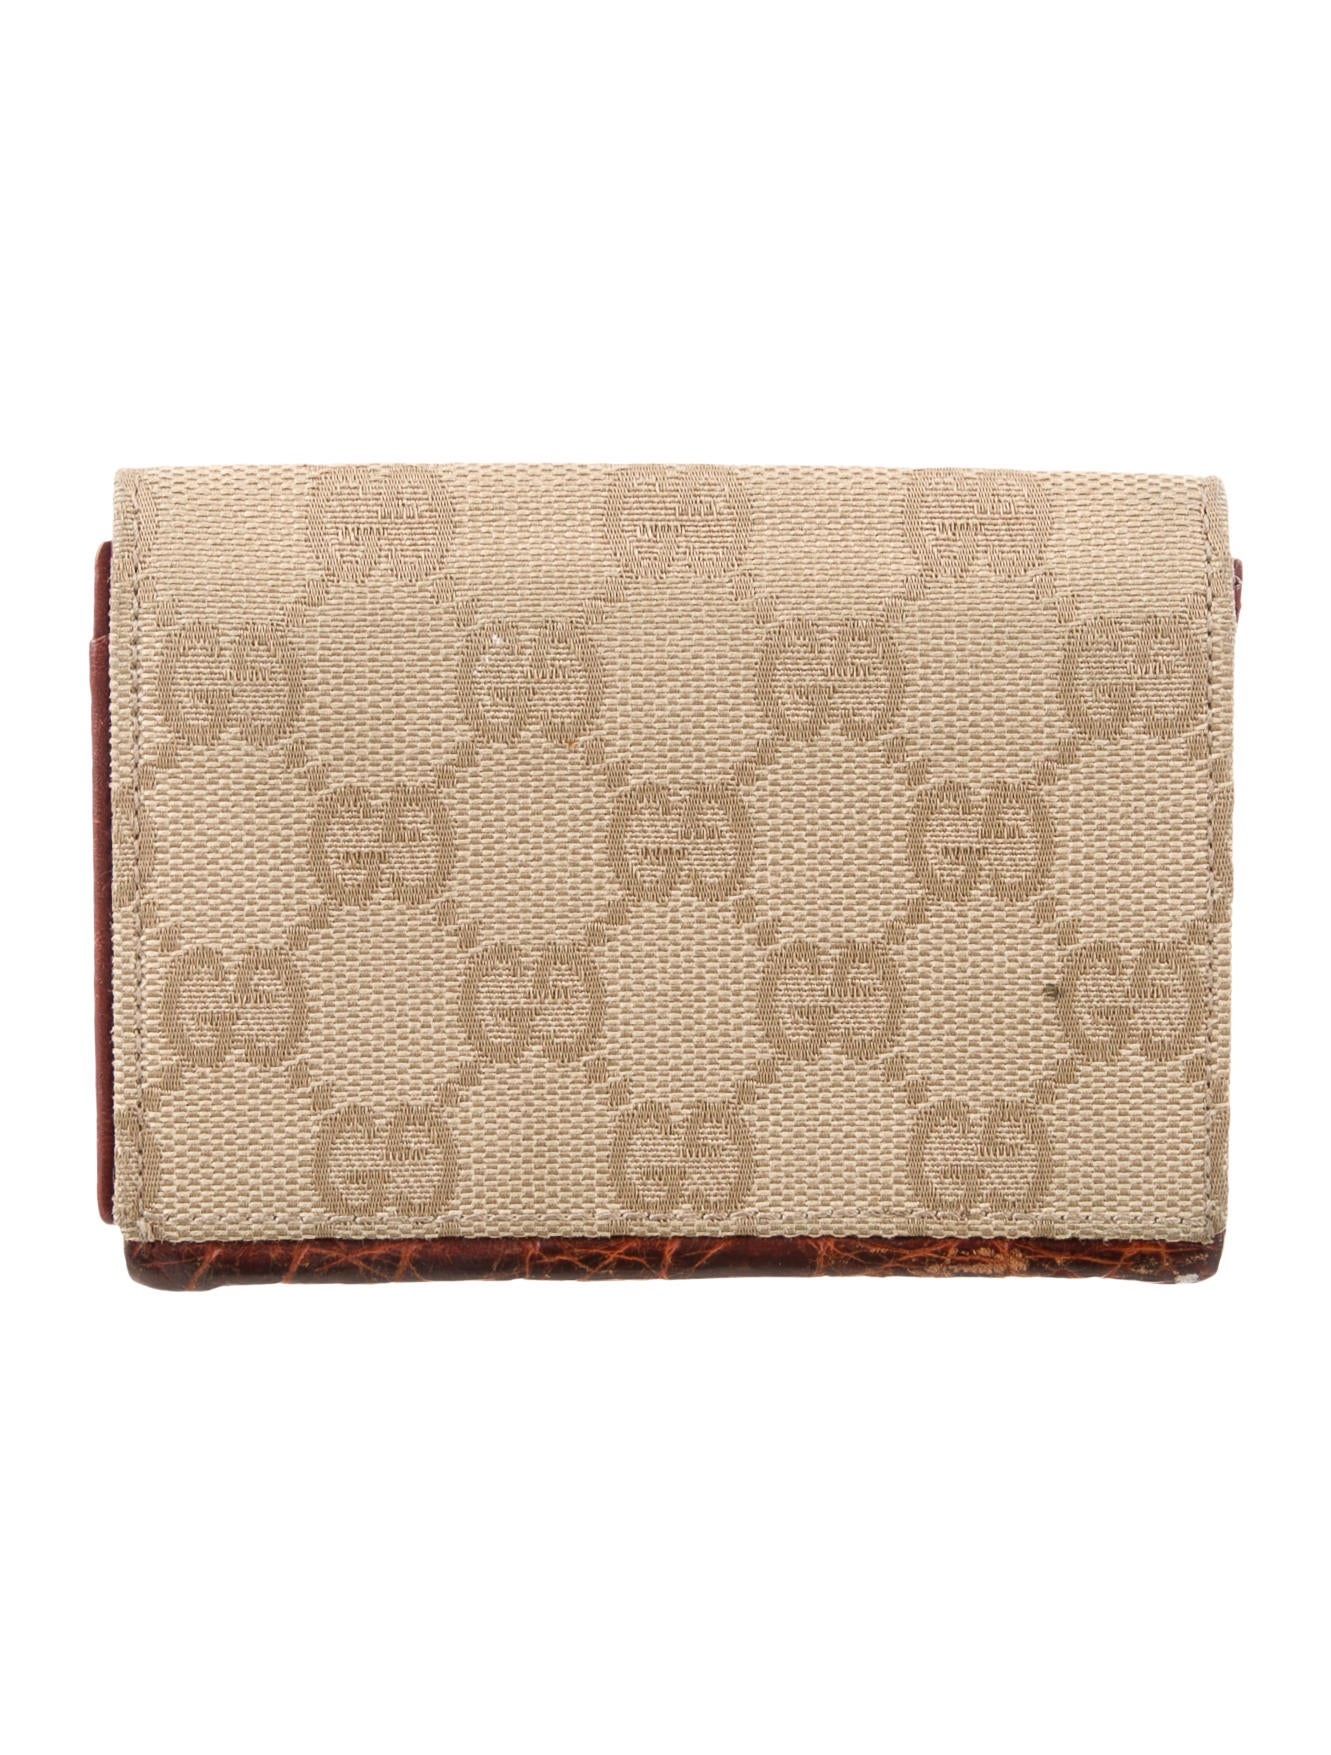 Gucci GG Canvas Card Holder - Accessories - GUC184493 | The RealReal